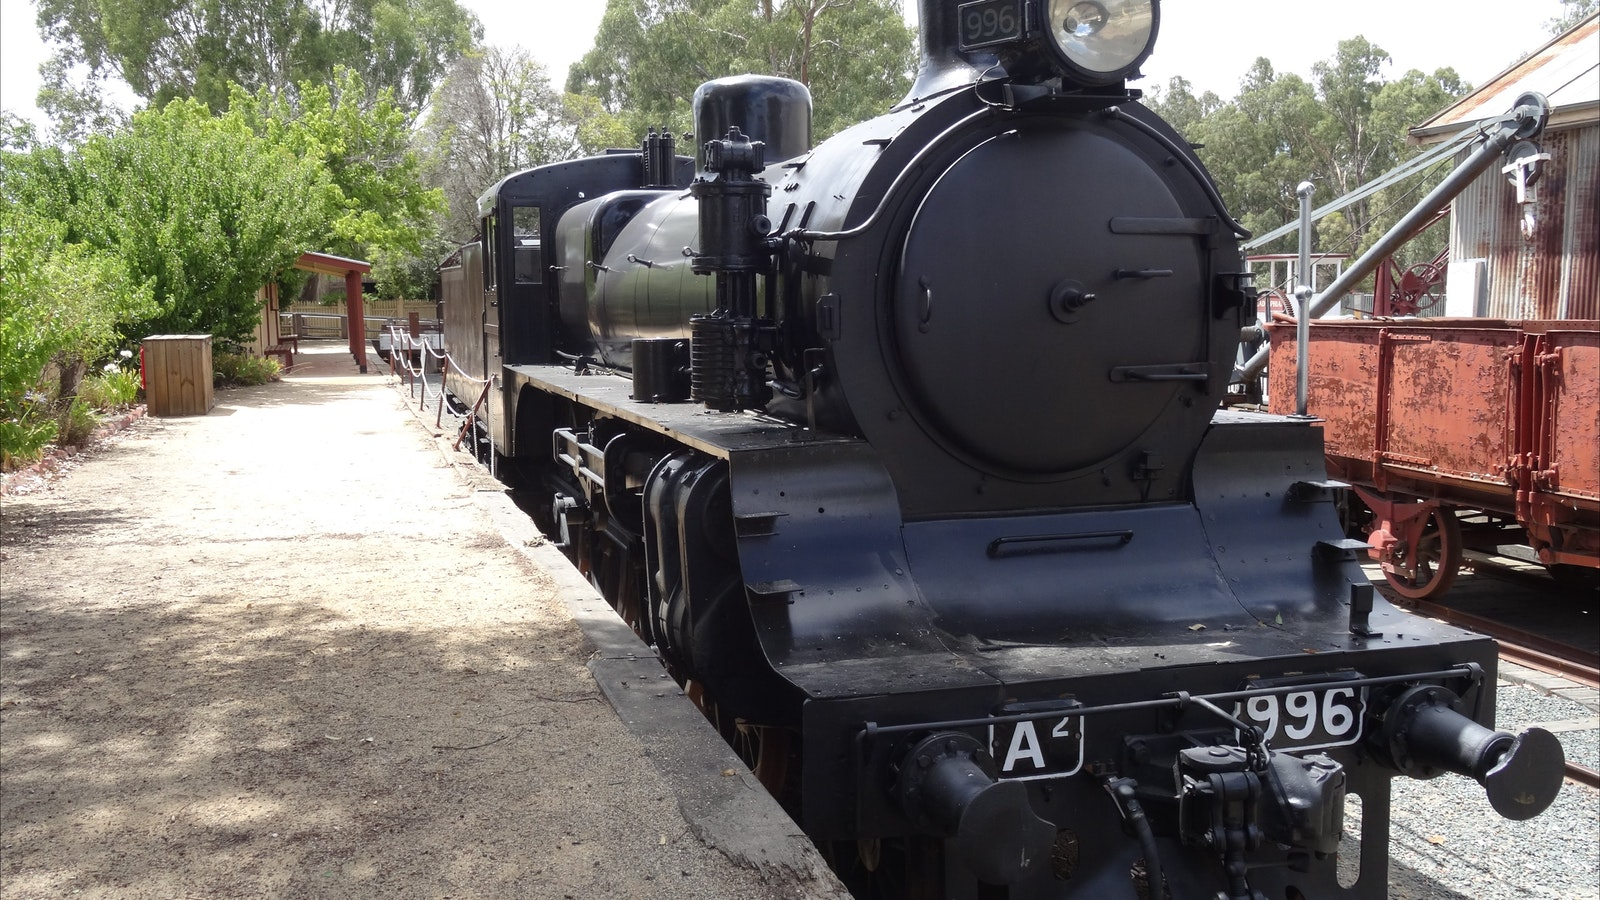 A2 locomotive